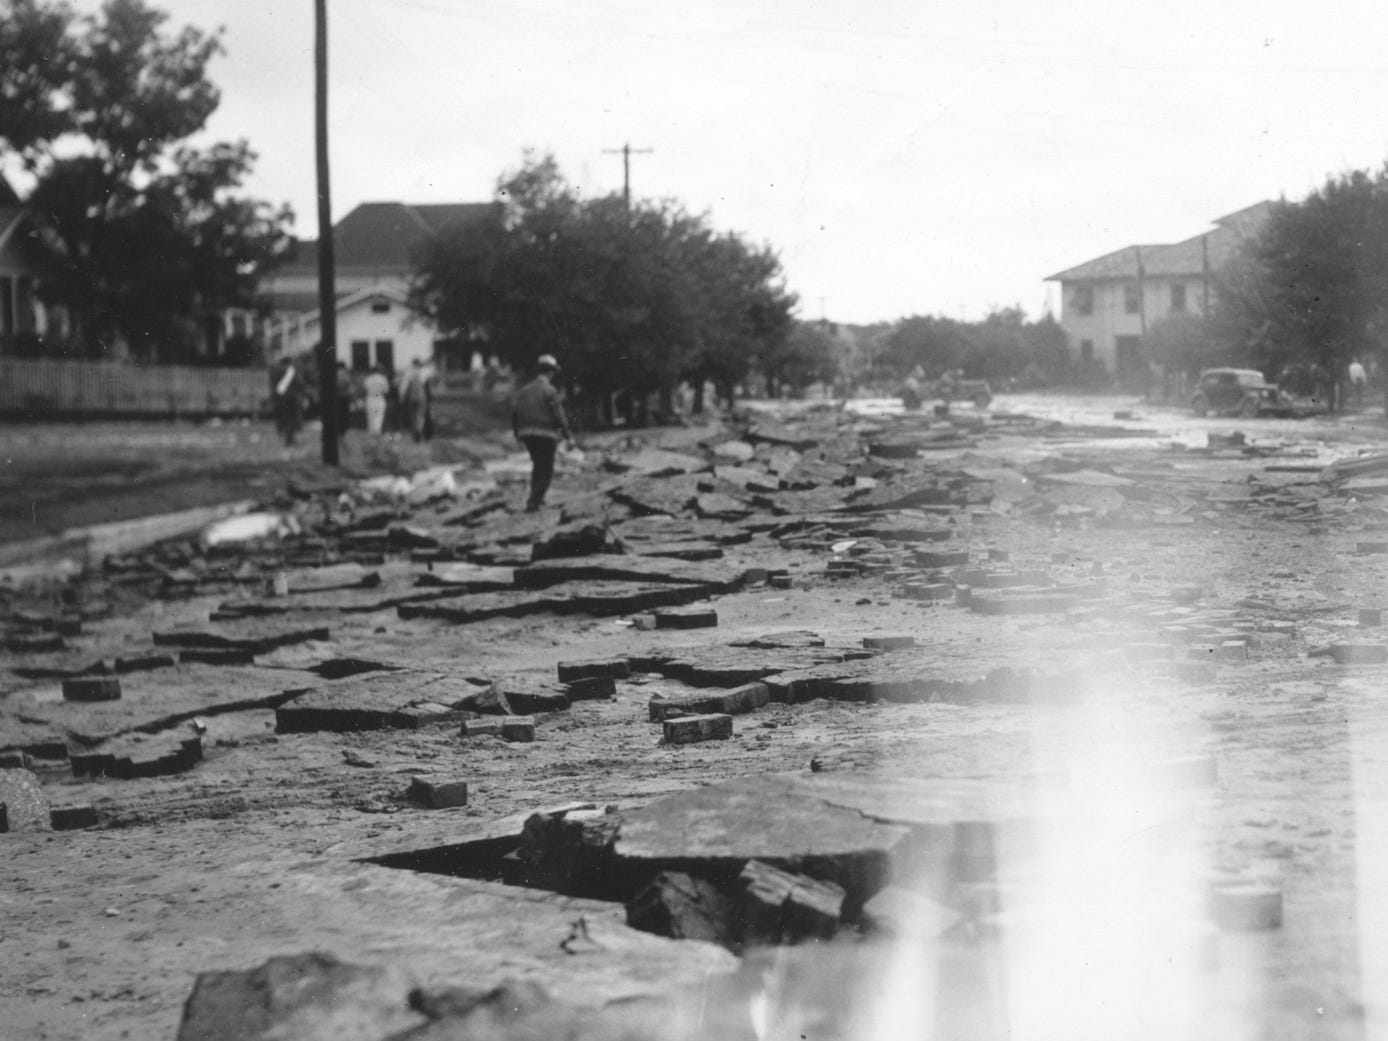 People walk around looking at the aftermath of the San Angelo flood of 1936.